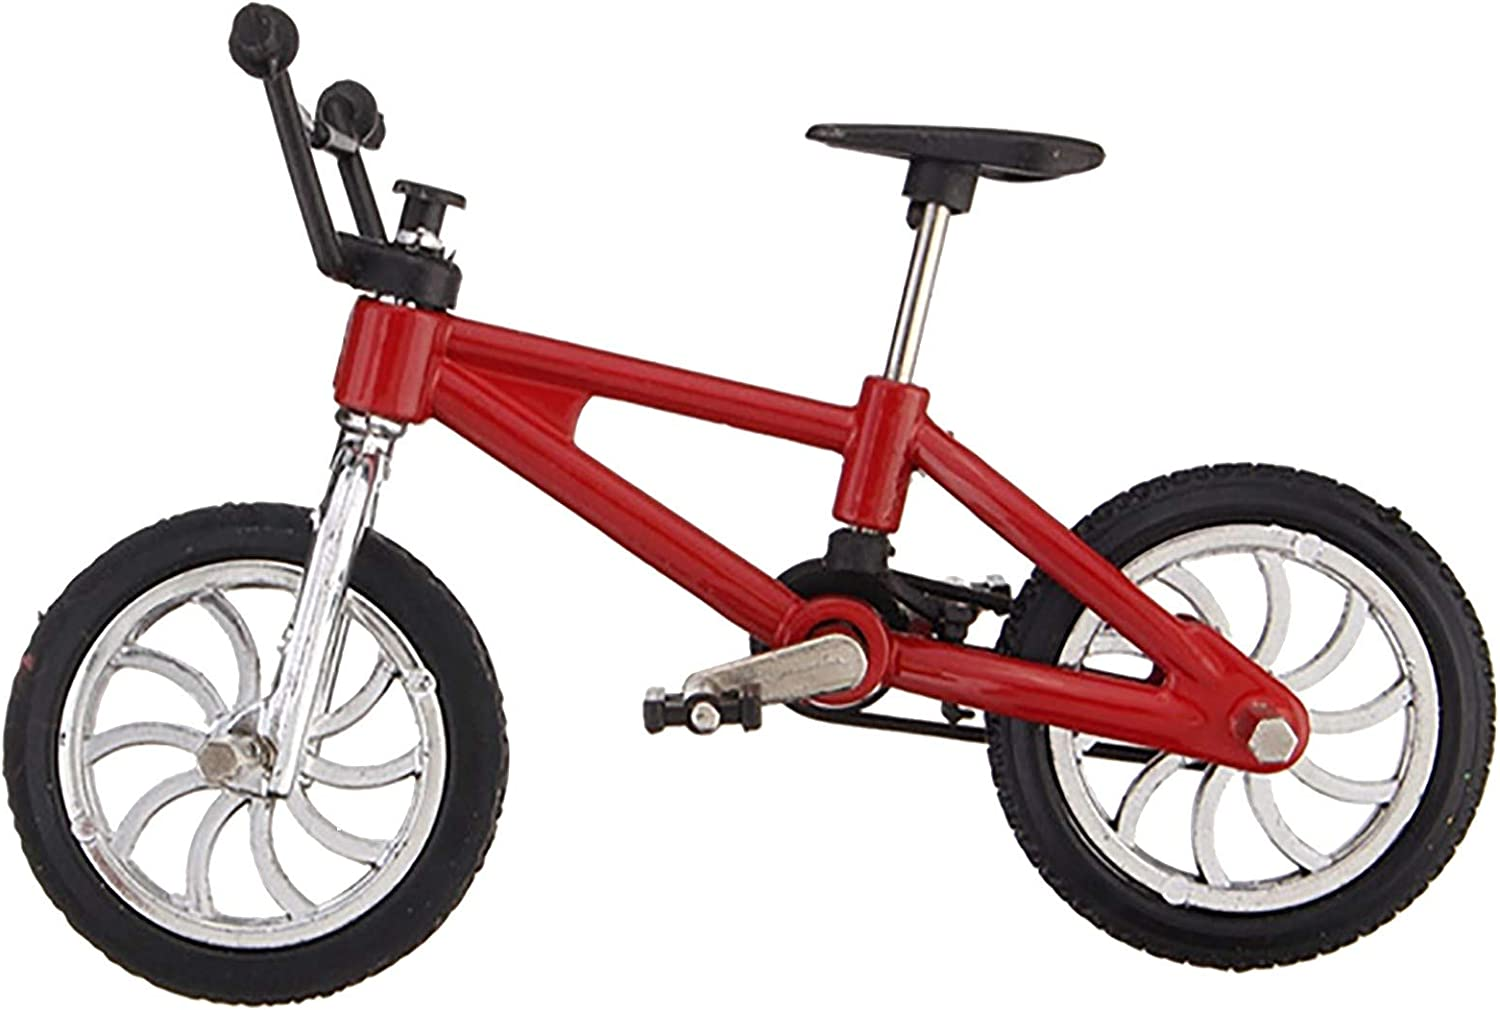 Goldye Courier shipping free Mini High material Bike Finger Cool Creative Bicycle Game Toy